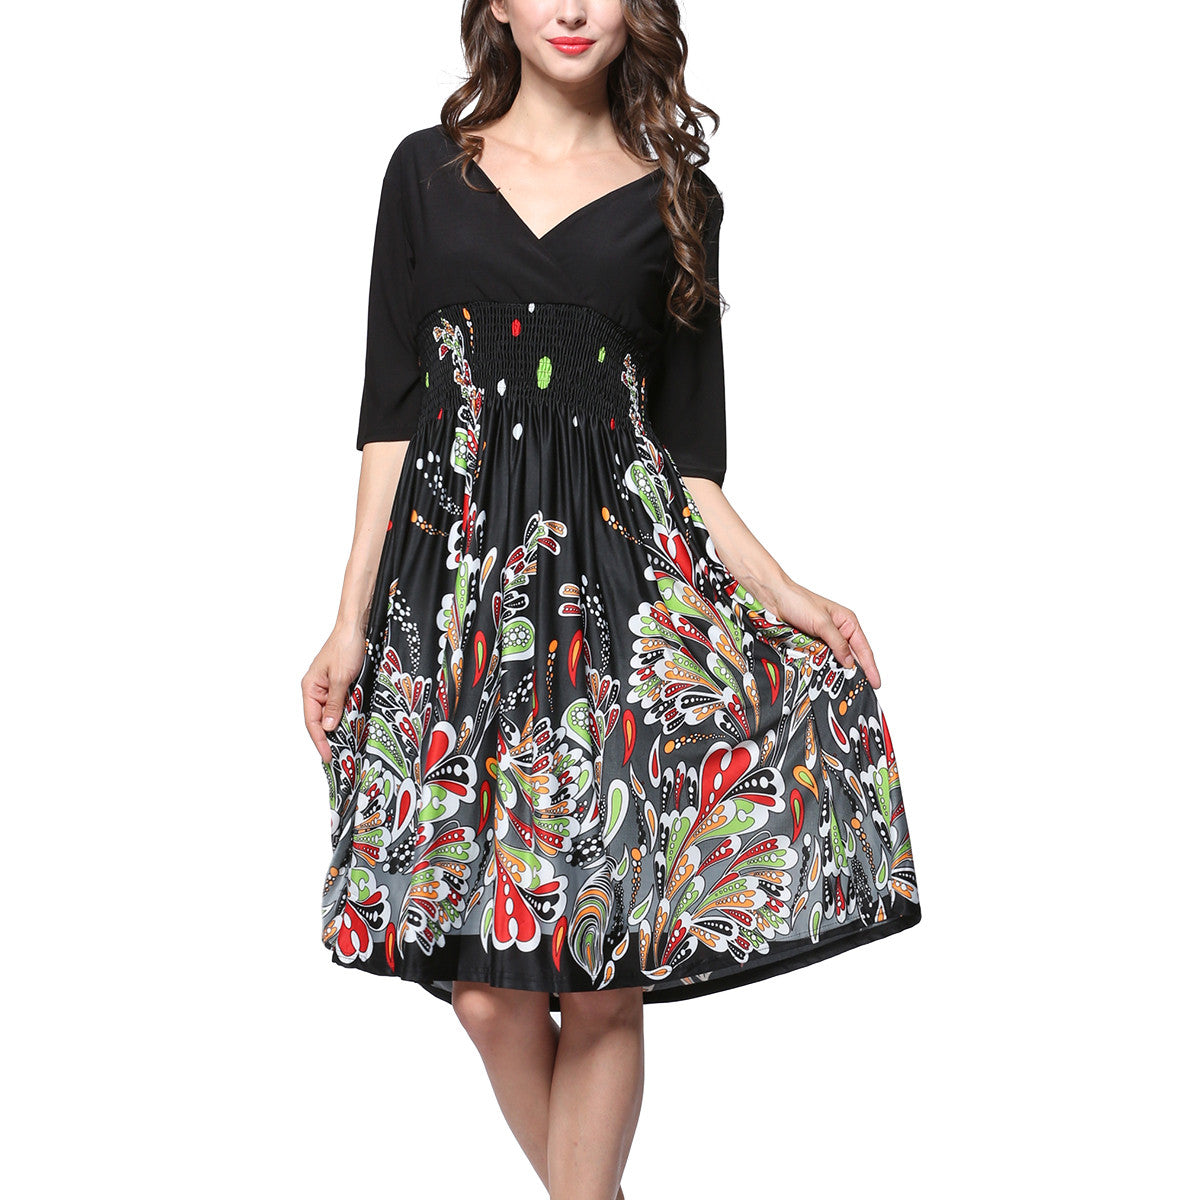 Women's V-neck Summer Puffy Swing Casual Party Dress with Sleeves Size 7XL